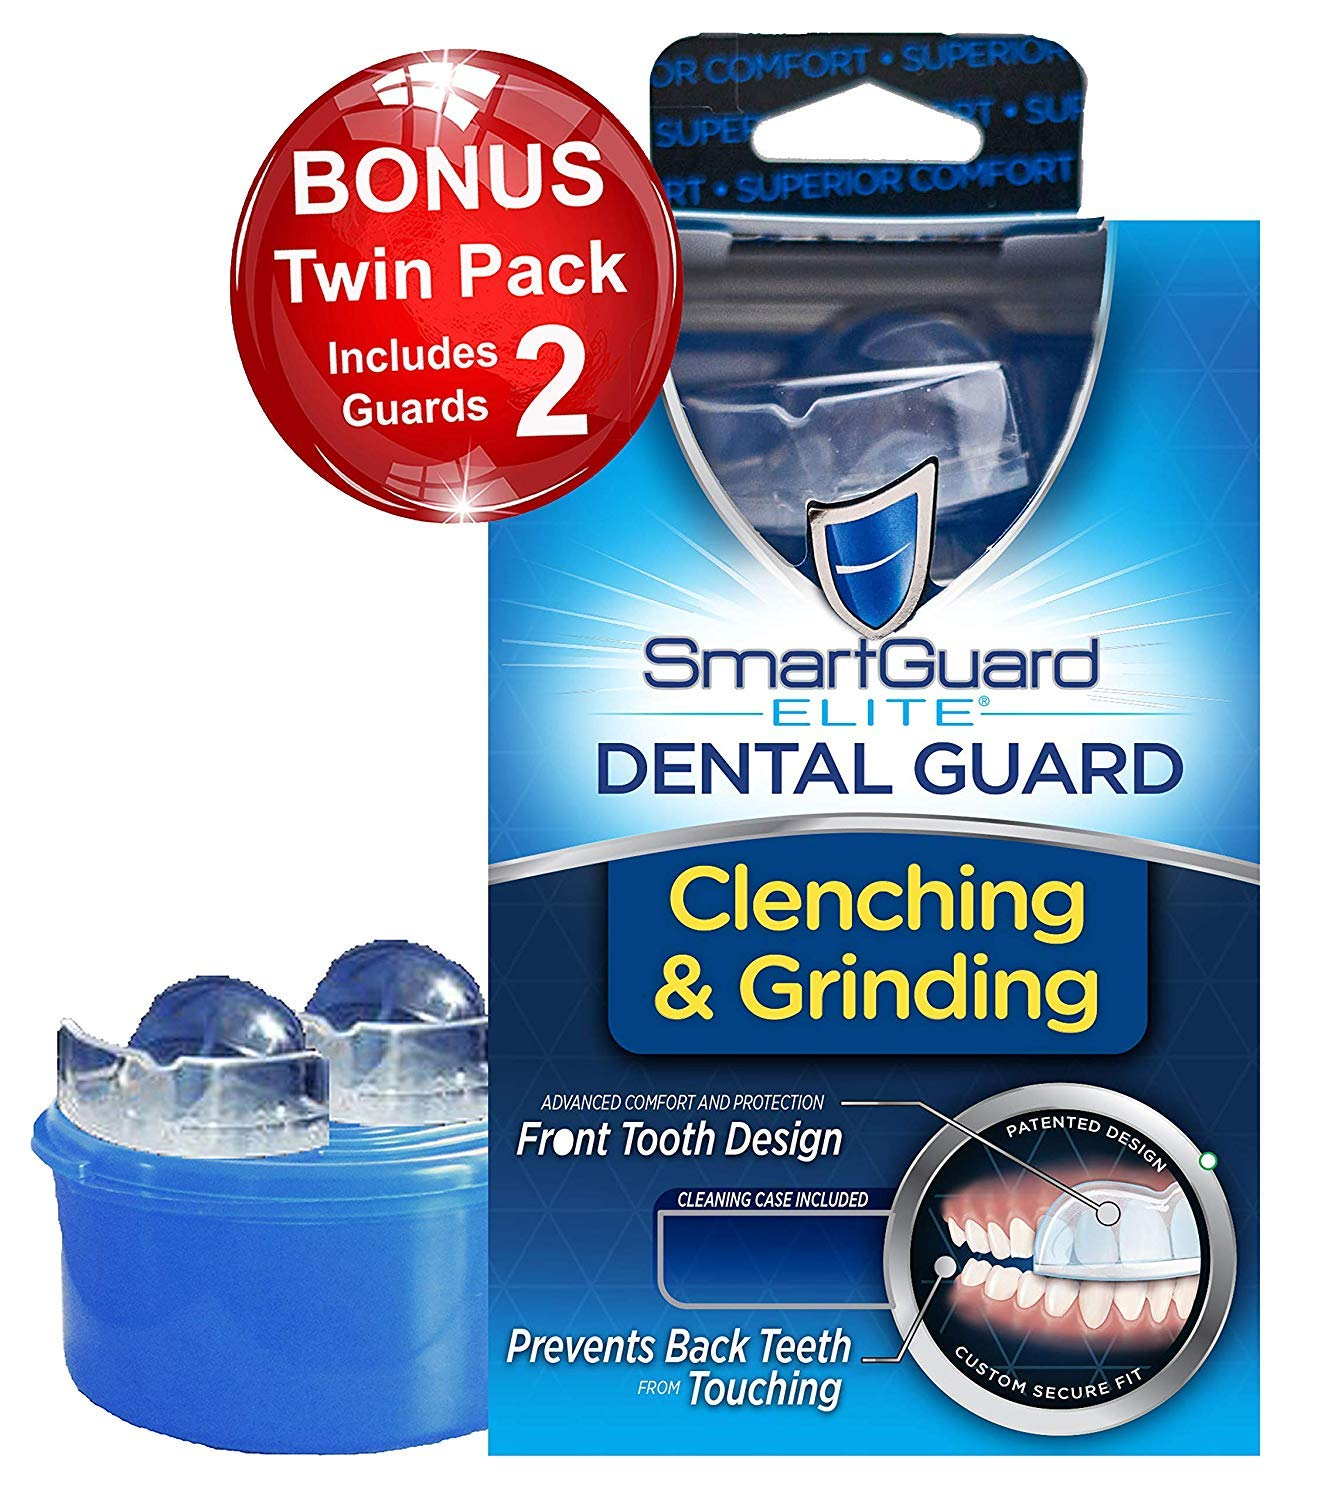 Dental Guard SMARTGUARD ELITE (2 Guards 1 Travel case) Front tooth Custom Anti Teeth Grinding Night Guard for Clenching - TMJ Dentist Designed - Bruxing Splint Mouth Protector For Relief of Symptoms by SmartGuard